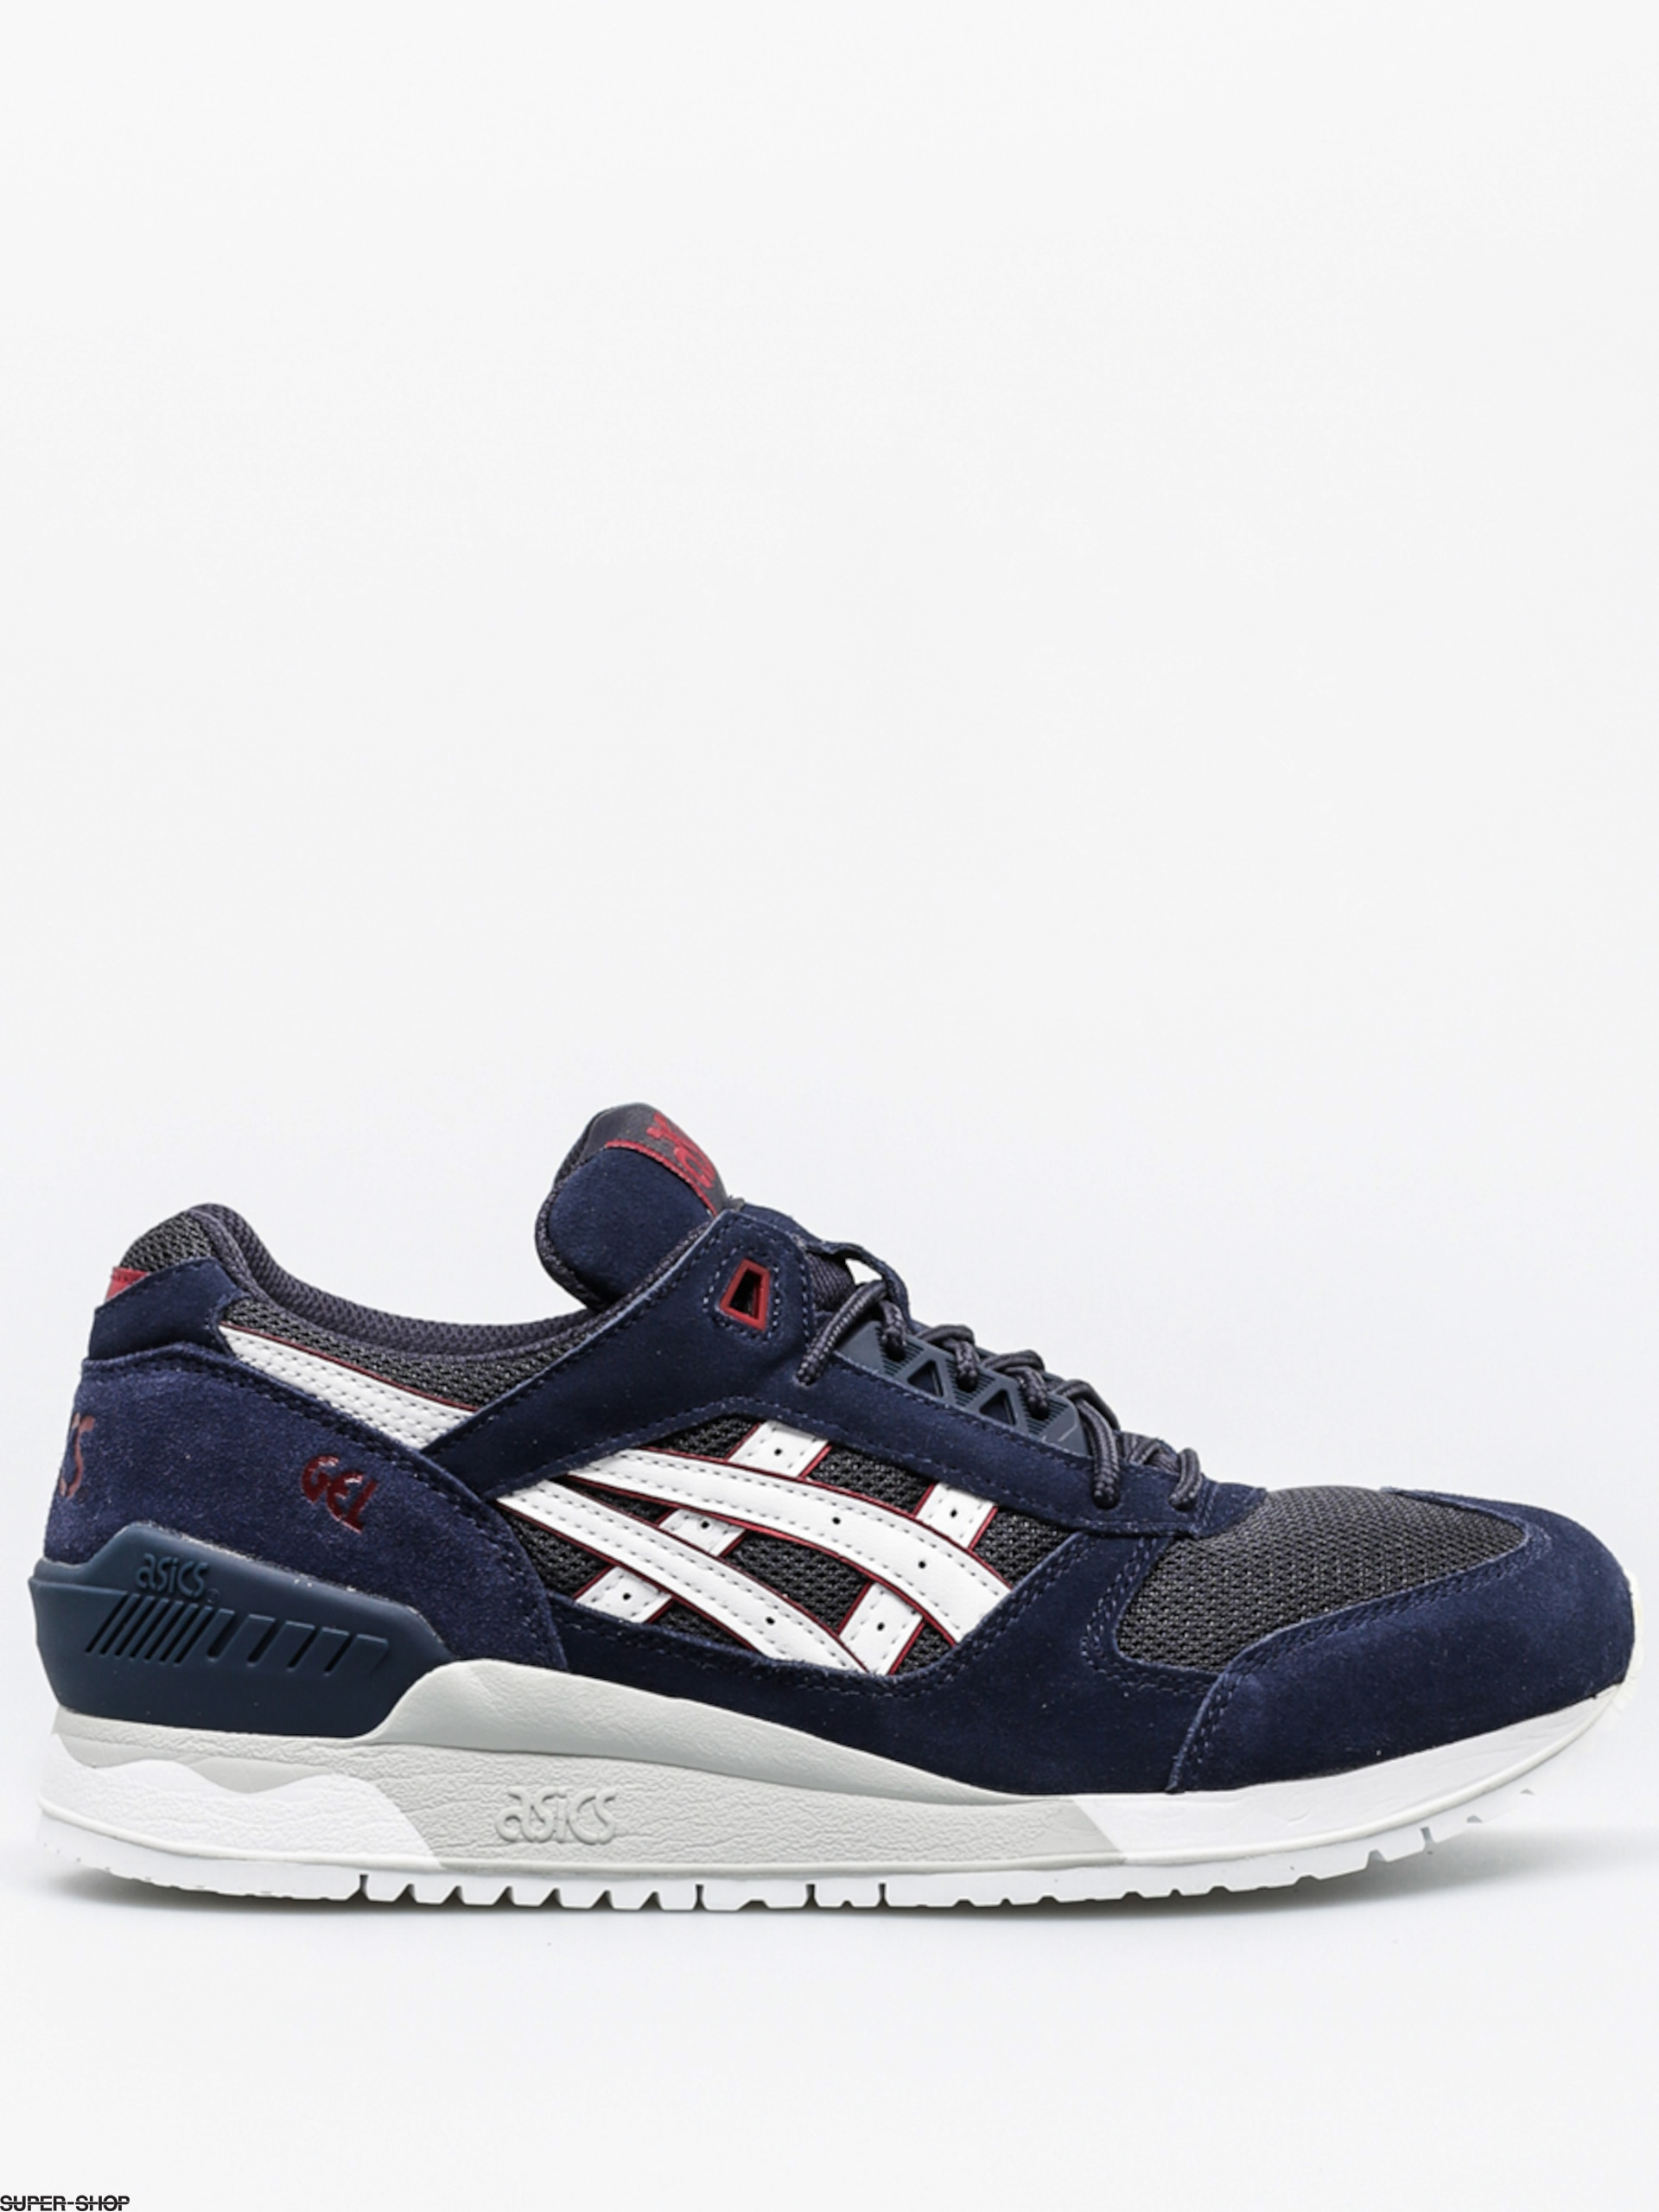 asics shoes gel respector india ink white. Black Bedroom Furniture Sets. Home Design Ideas